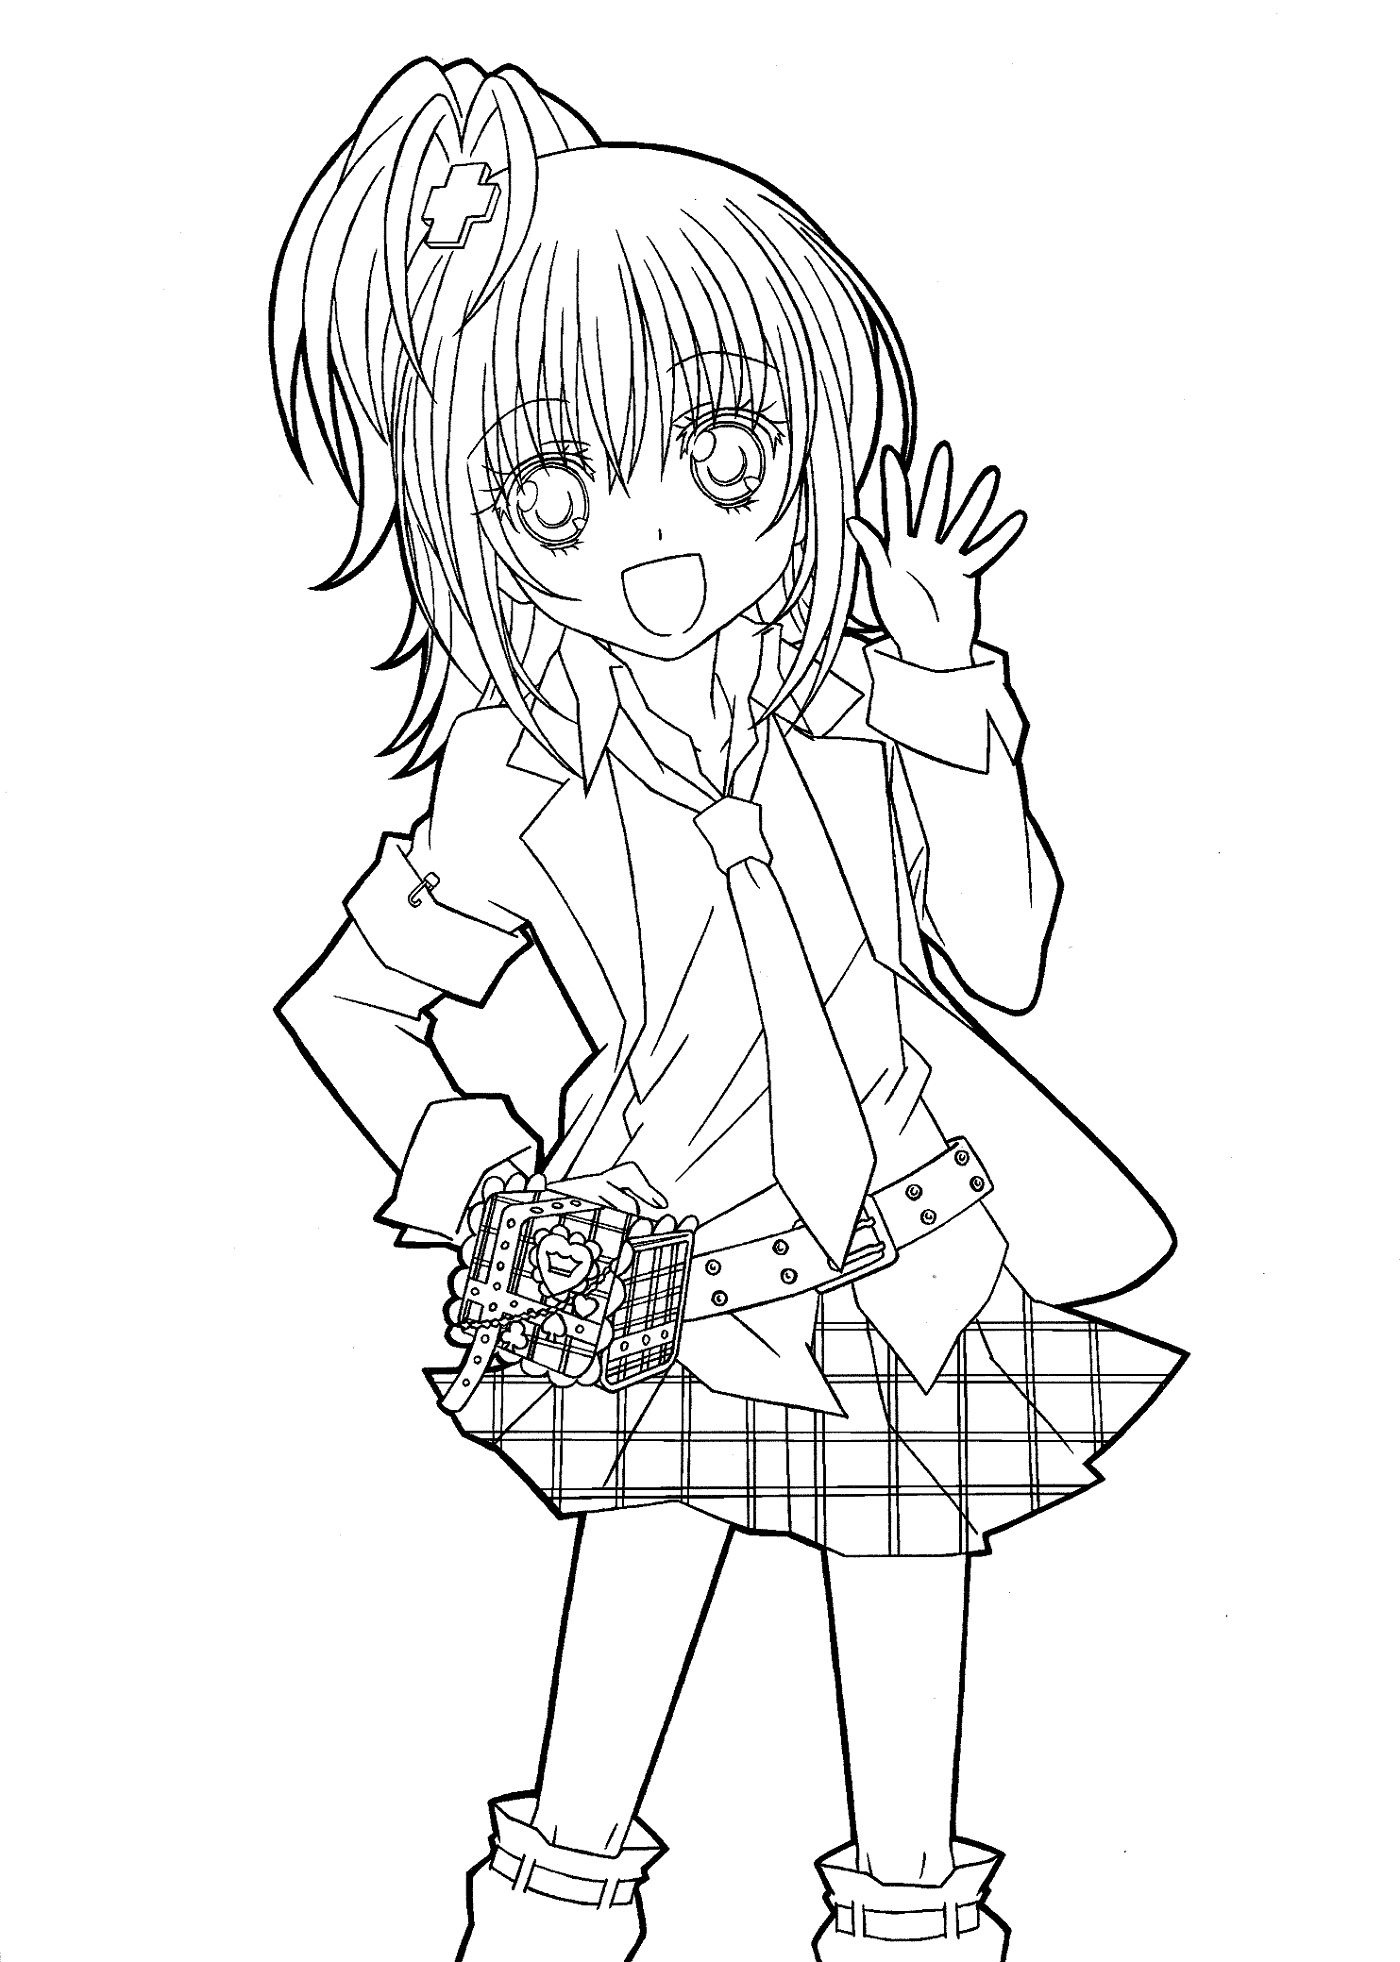 anime girl coloring sheet anime girls from shugo chara coloring pages for kids girl anime sheet coloring